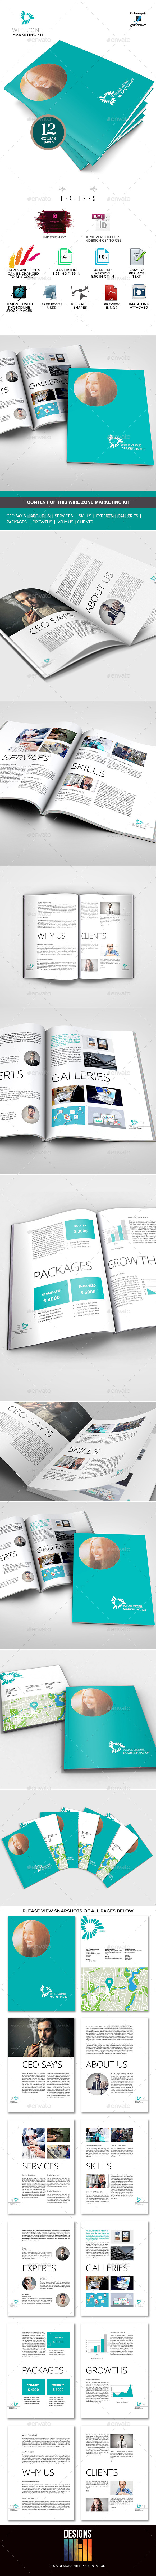 GraphicRiver Marketing Document for Multipurpose Use 9616335